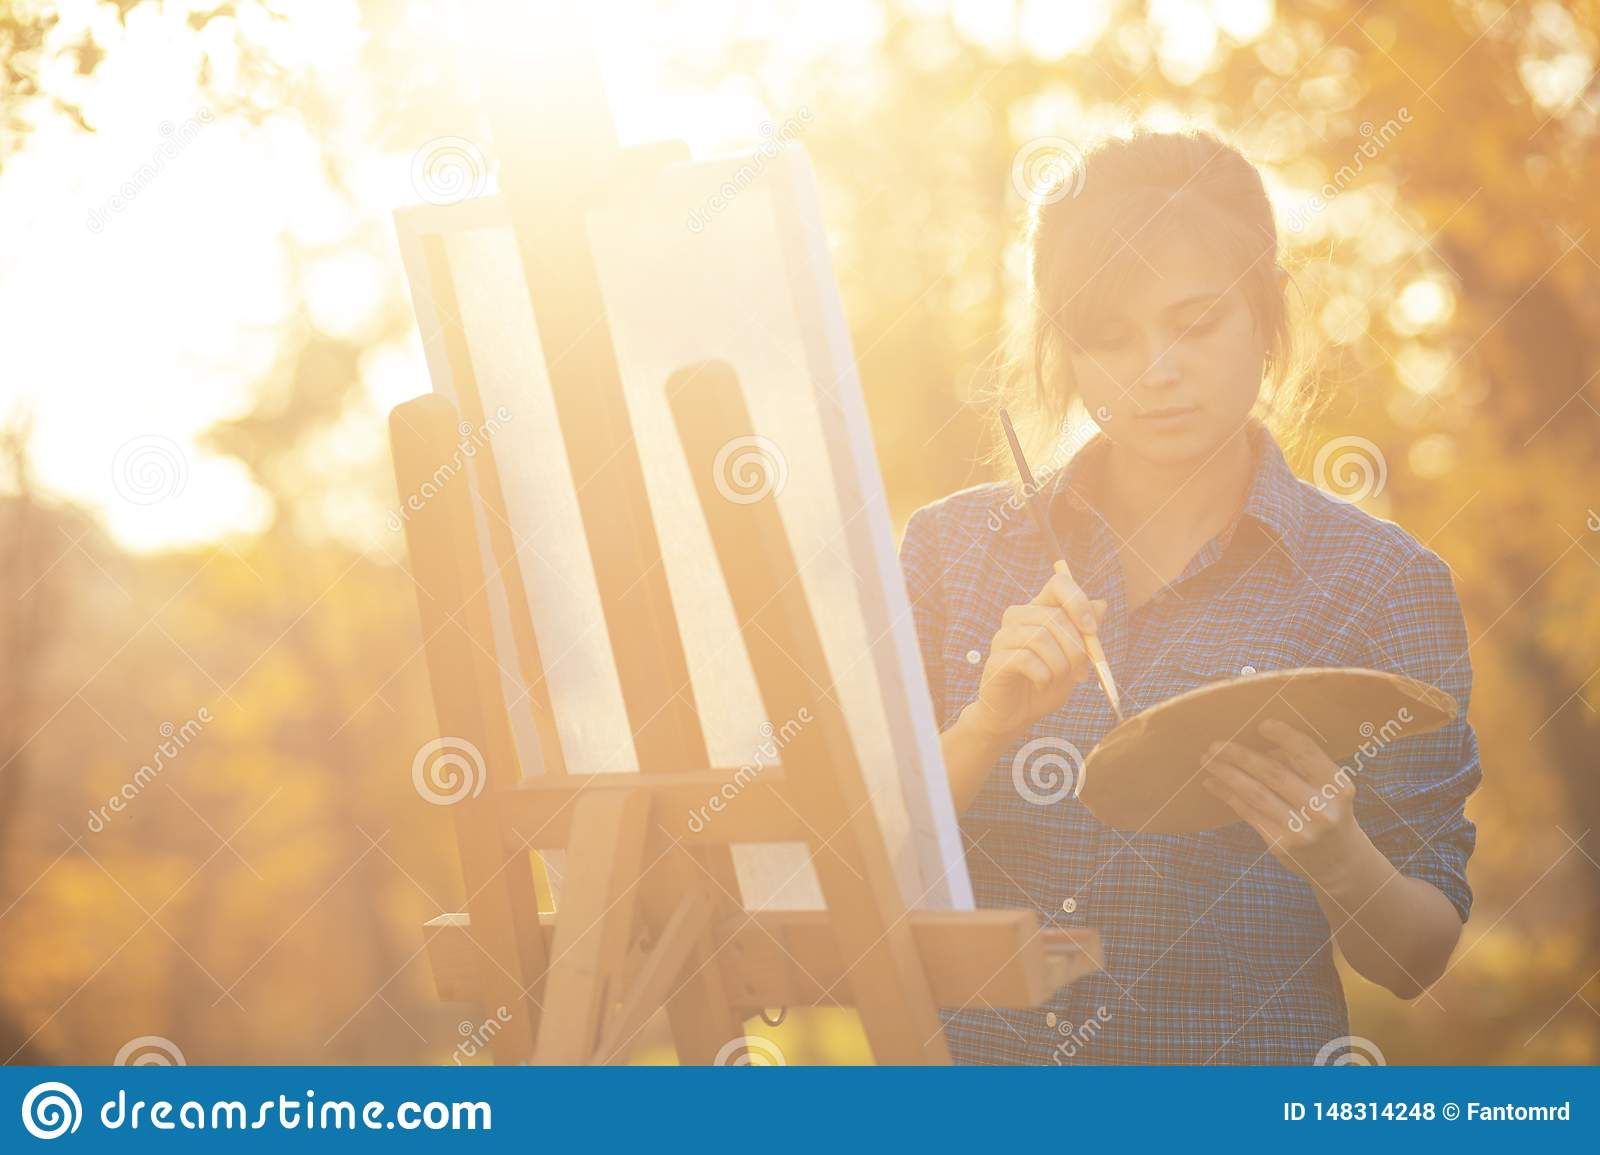 Young woman artist drawing a picture on canvas on an easel in nature, a girl with a brush and a palette of paints working inspired